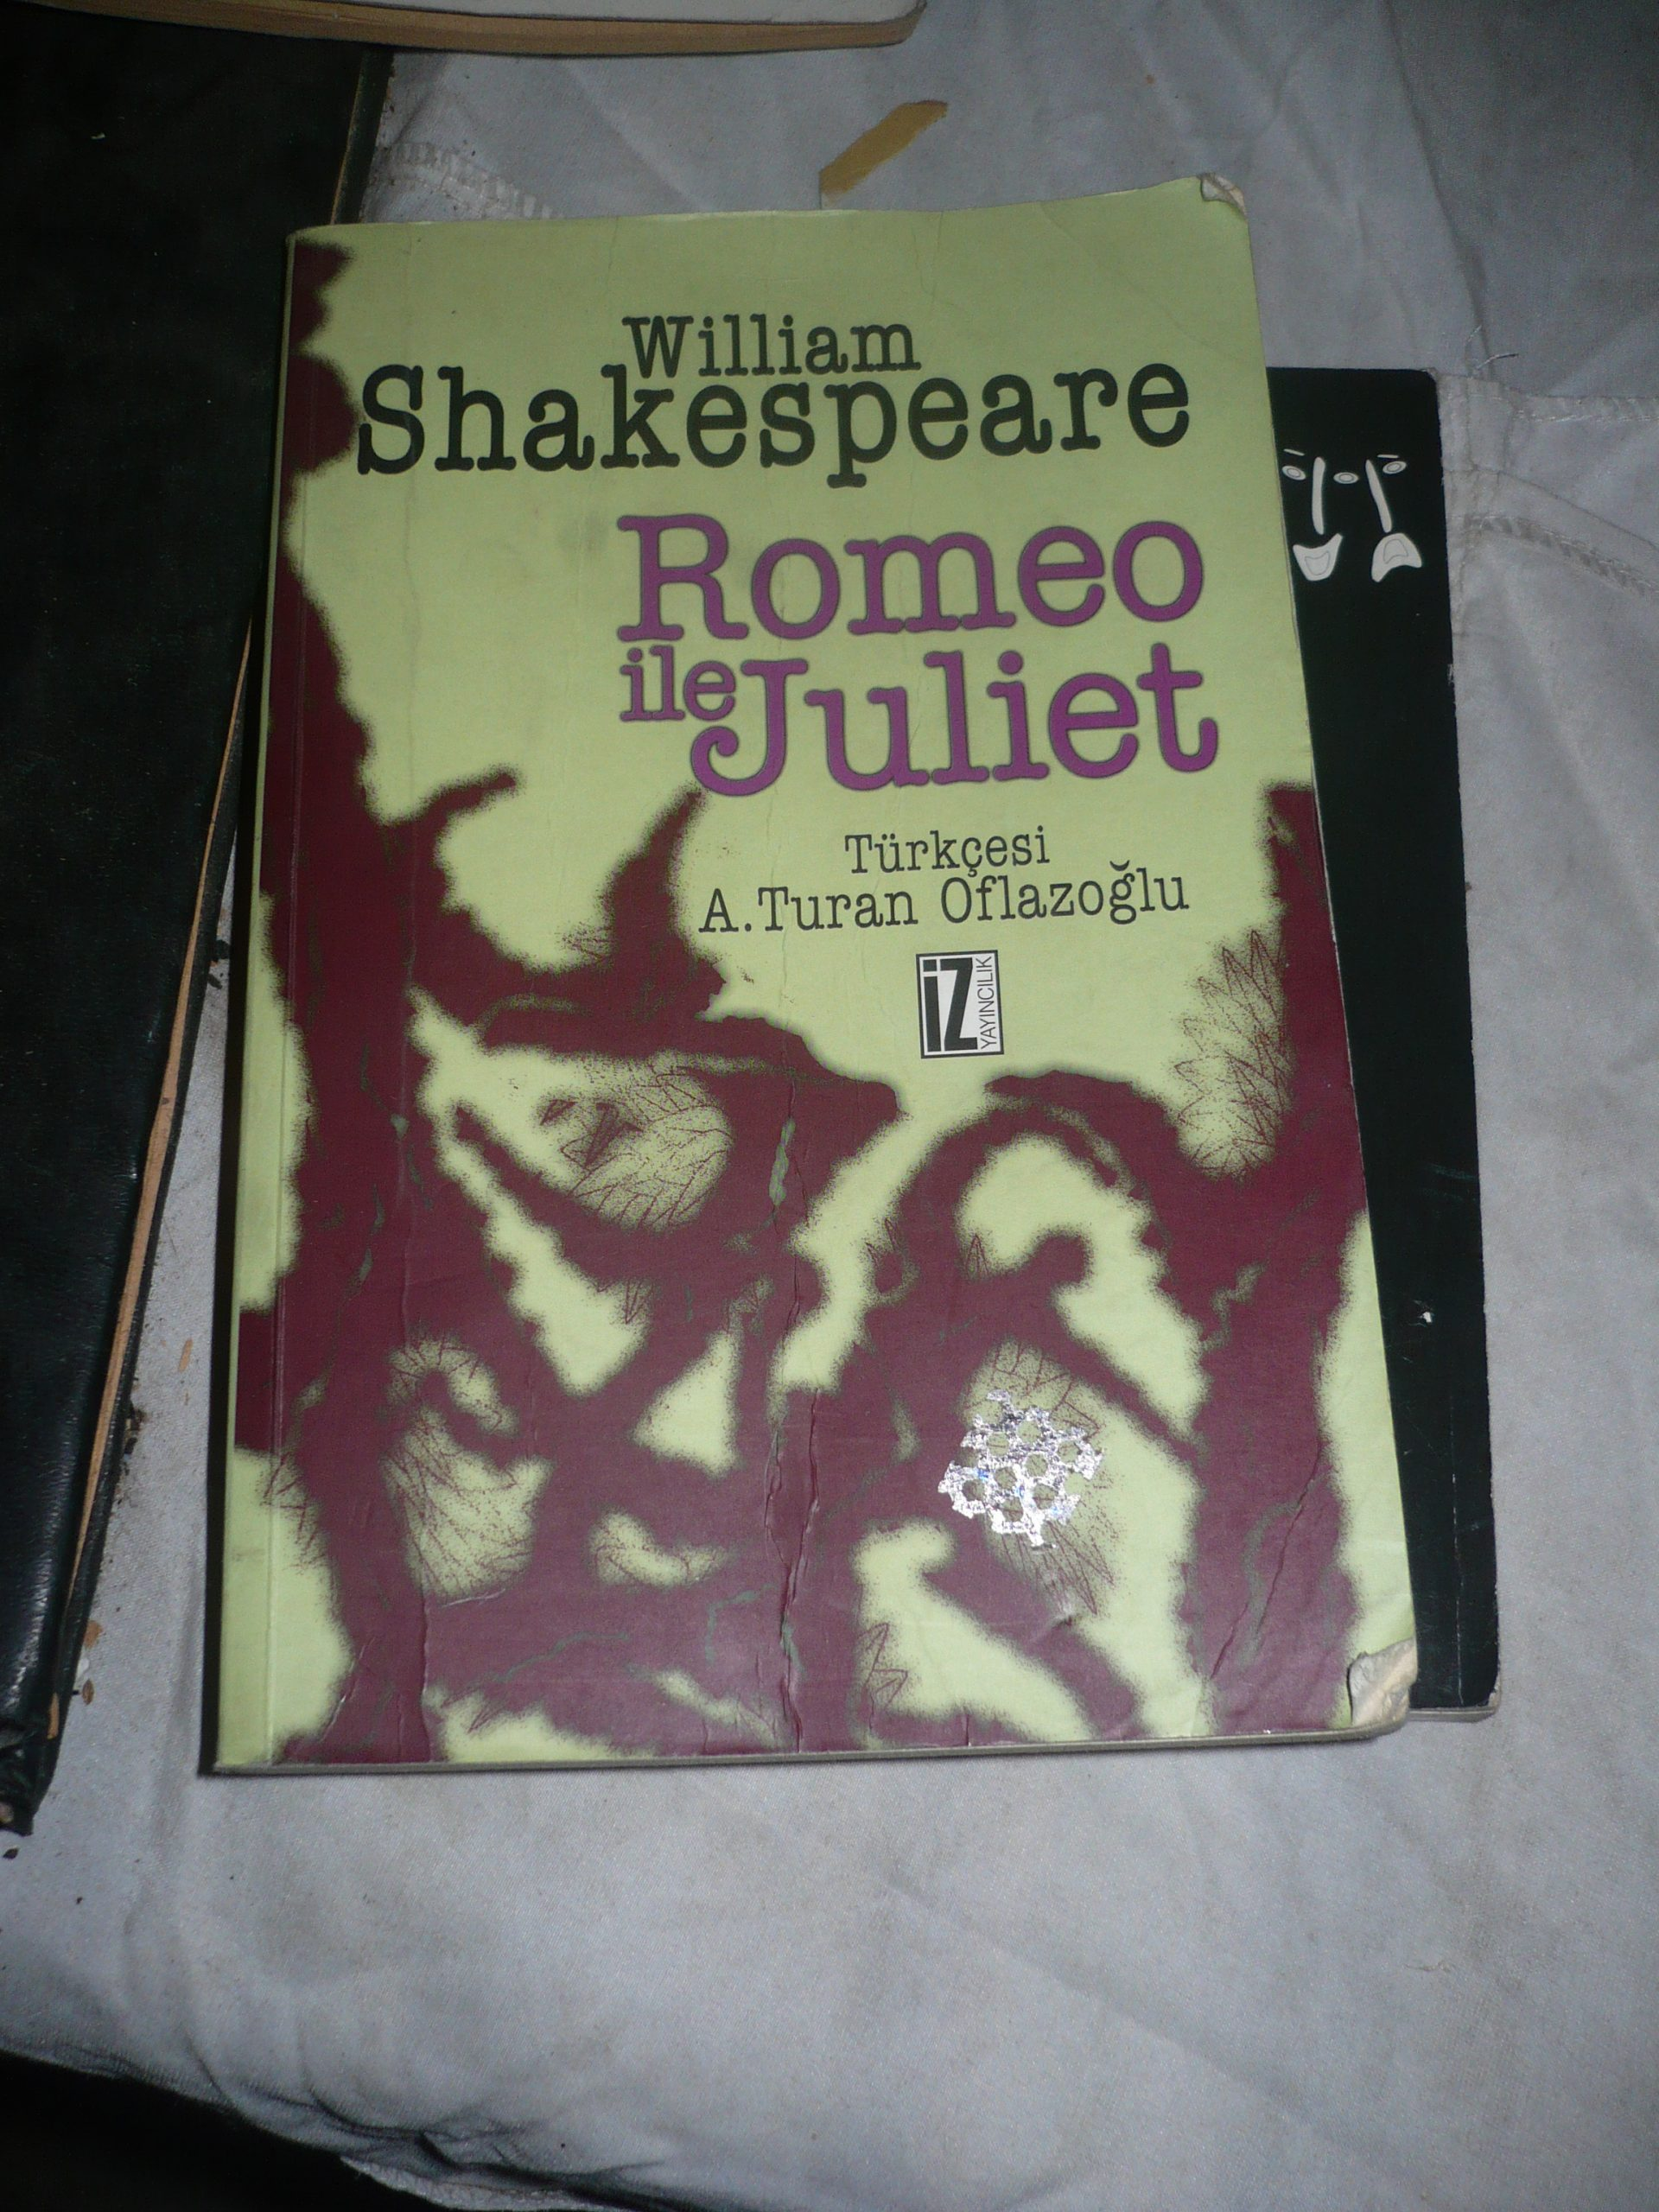 Romeo ile Juliet/William Shakespere/10 tl